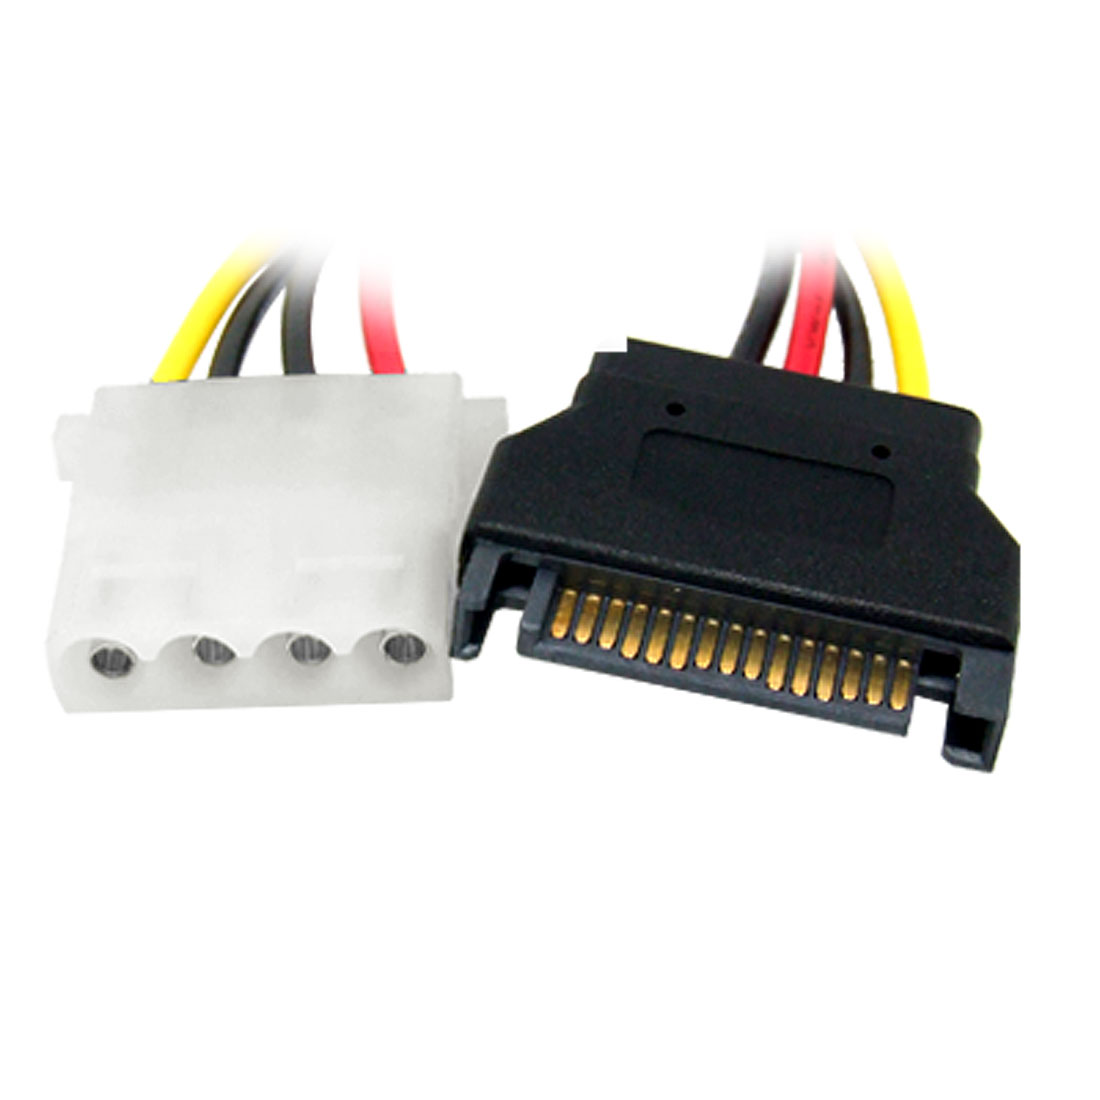 SATA 15 Pin Male to 4 pin Female Power Cable